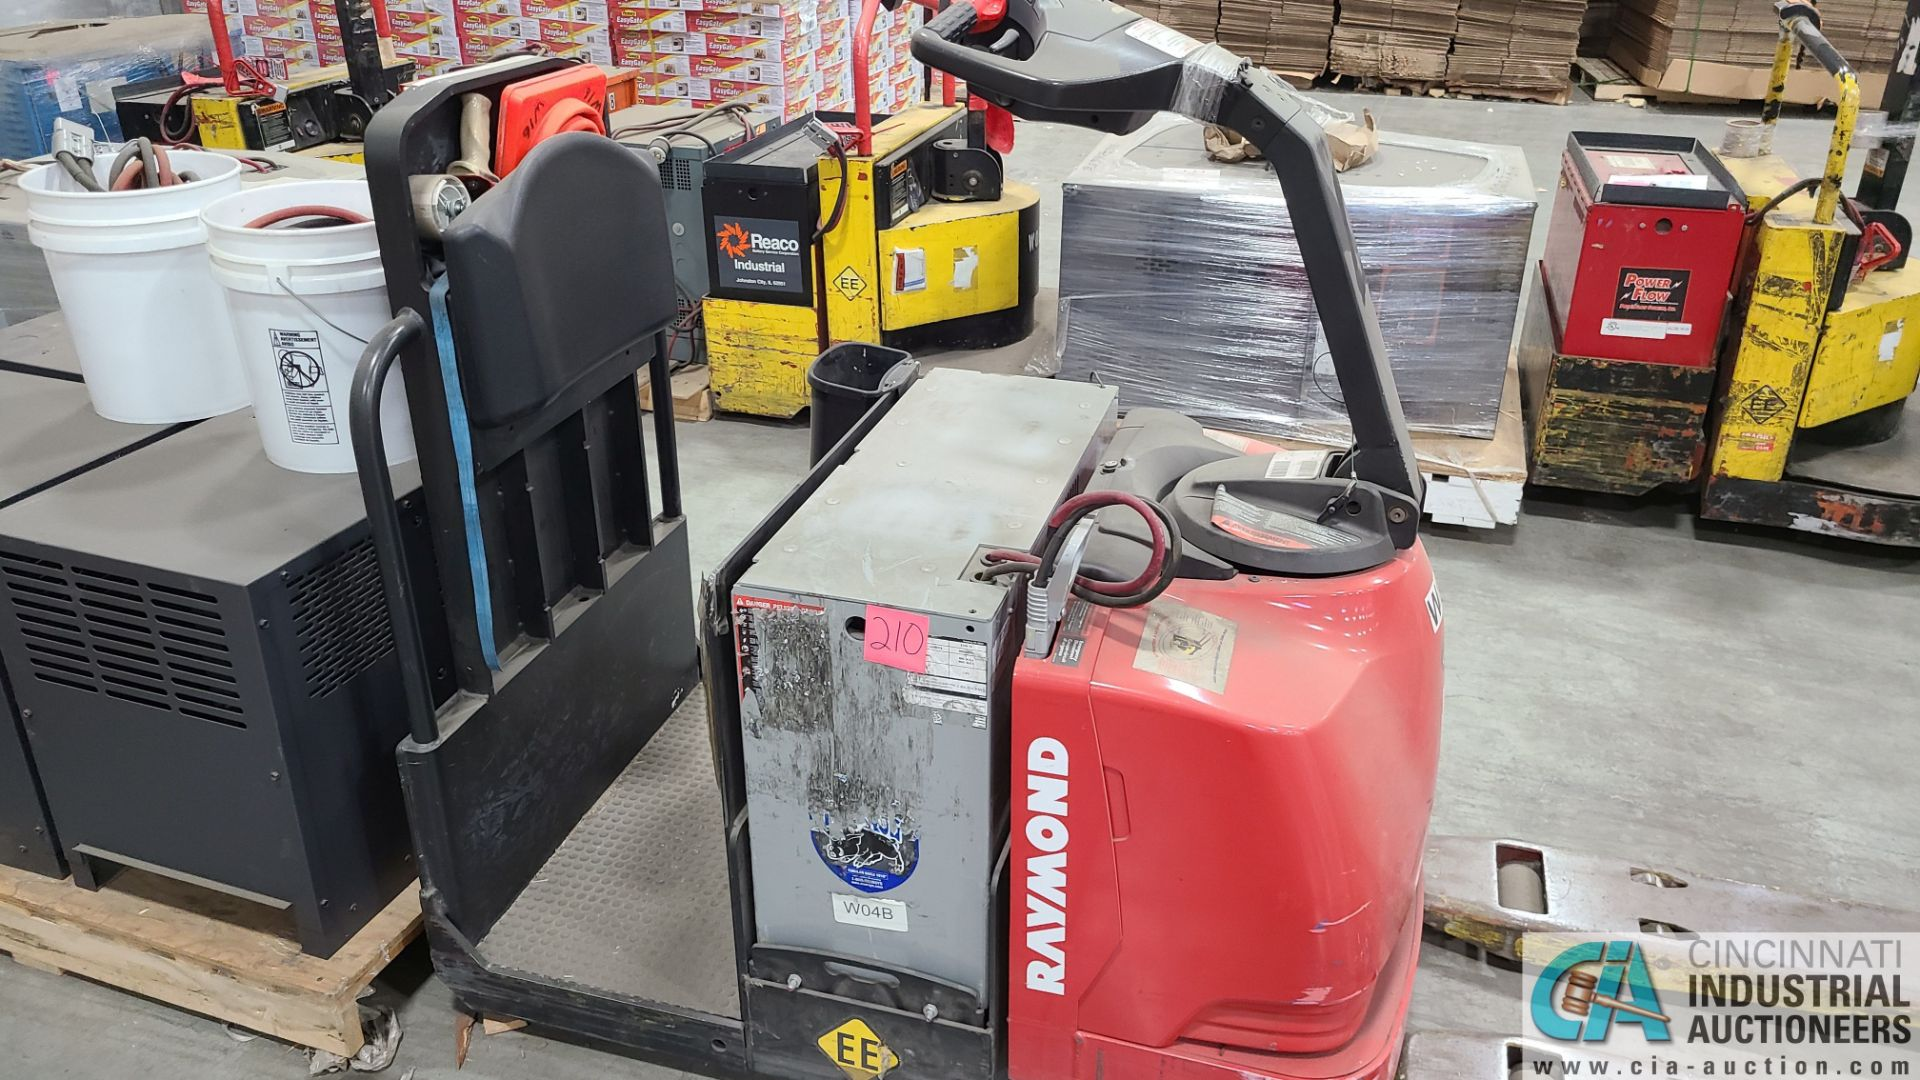 RAYMOND MODEL 8510 ELECTRIC PALLET TRUCK; S/N 851-15-11752, W/ BATTERY, HOURS N/A (NEW 2015) (2570 - Image 3 of 4